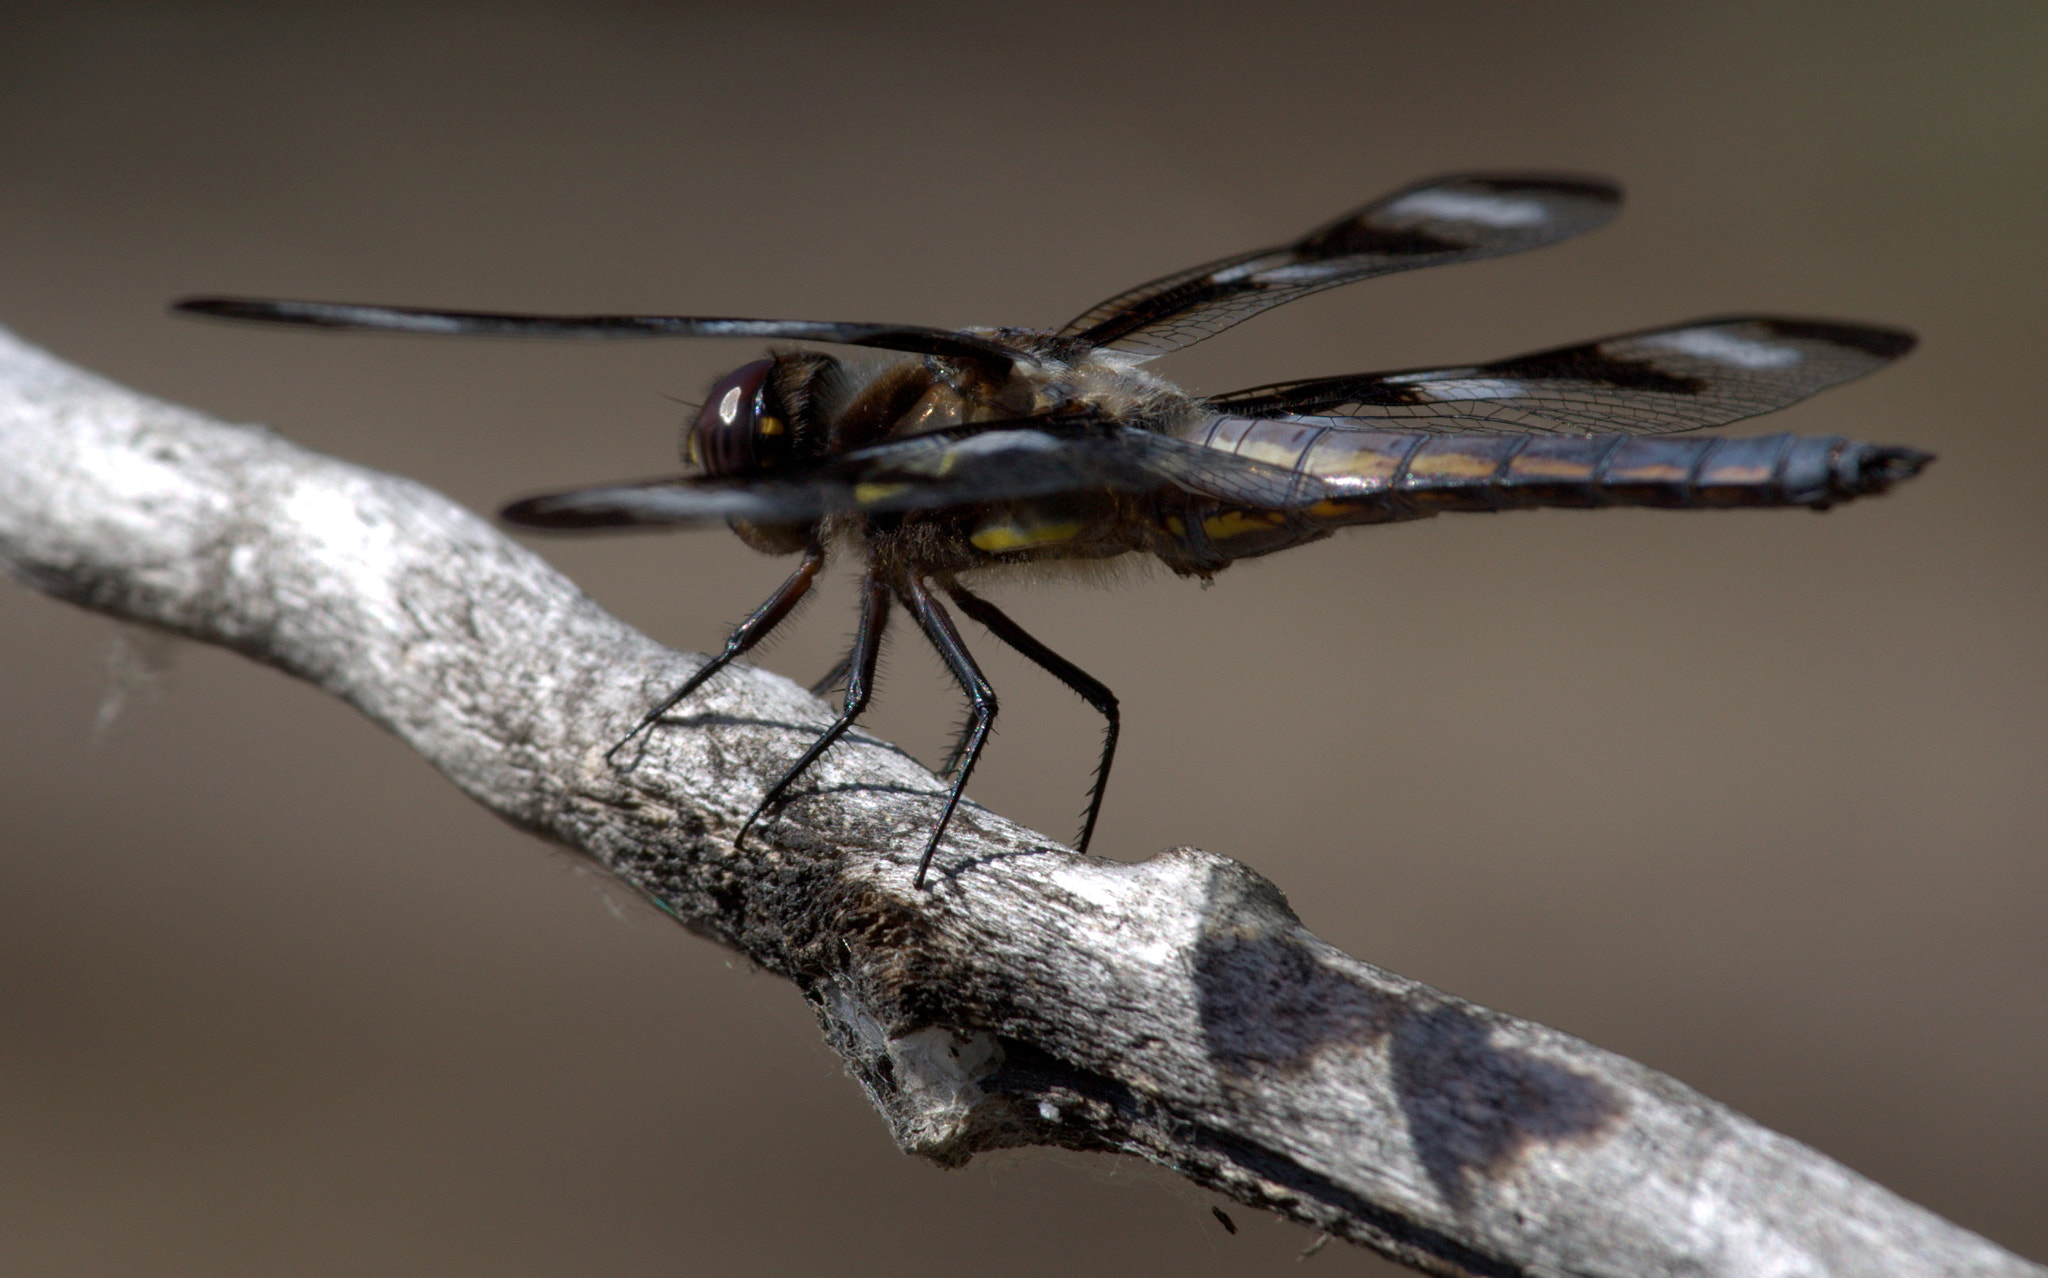 Photograph Dragonfly from our nature walk yesterday by Kevin Fechtelkotter on 500px